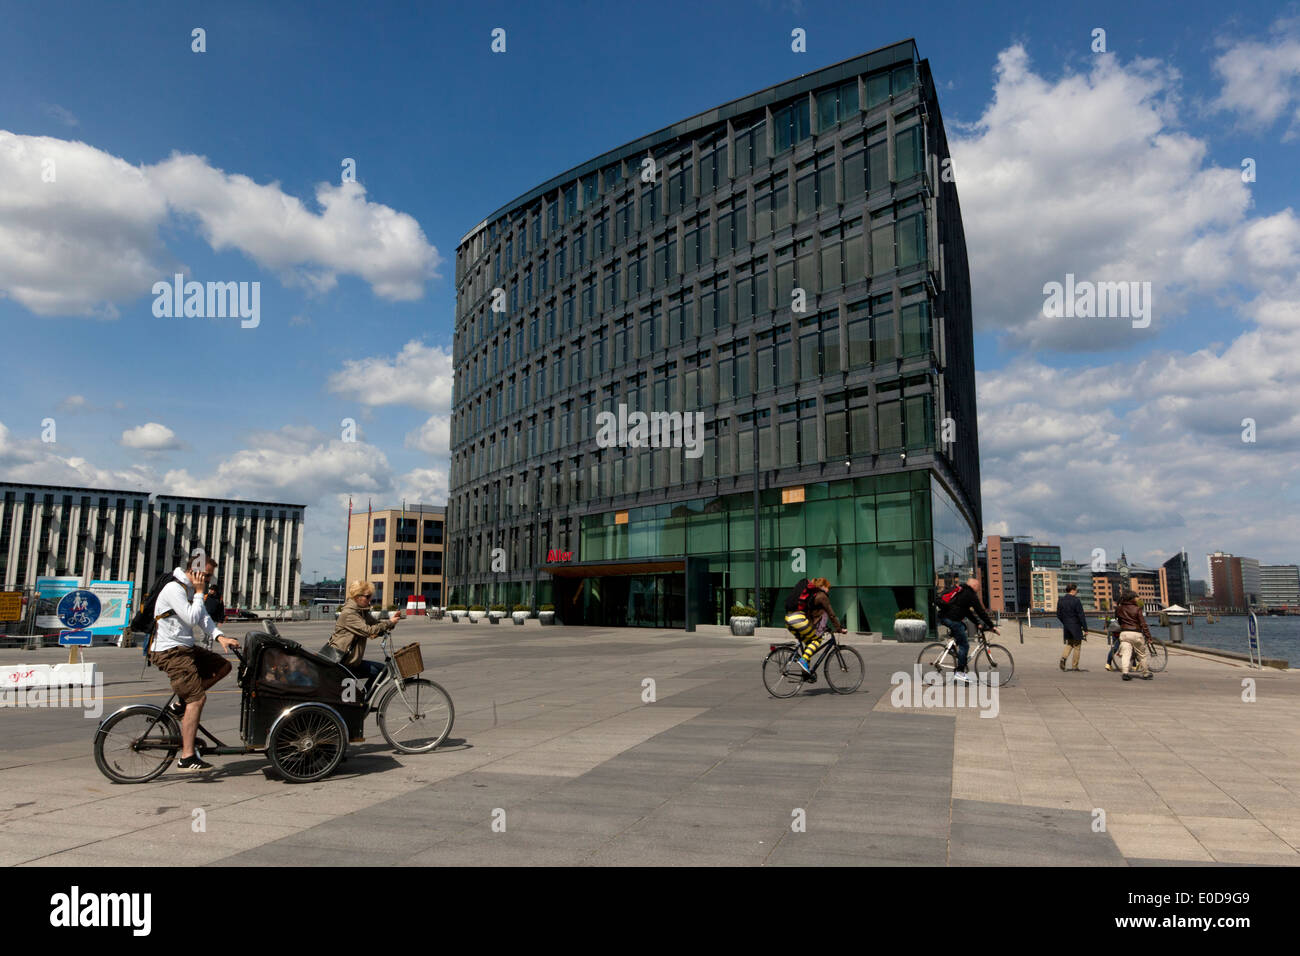 Aller Press media house – corporate building in Copenhagen. Denmark - Stock Image